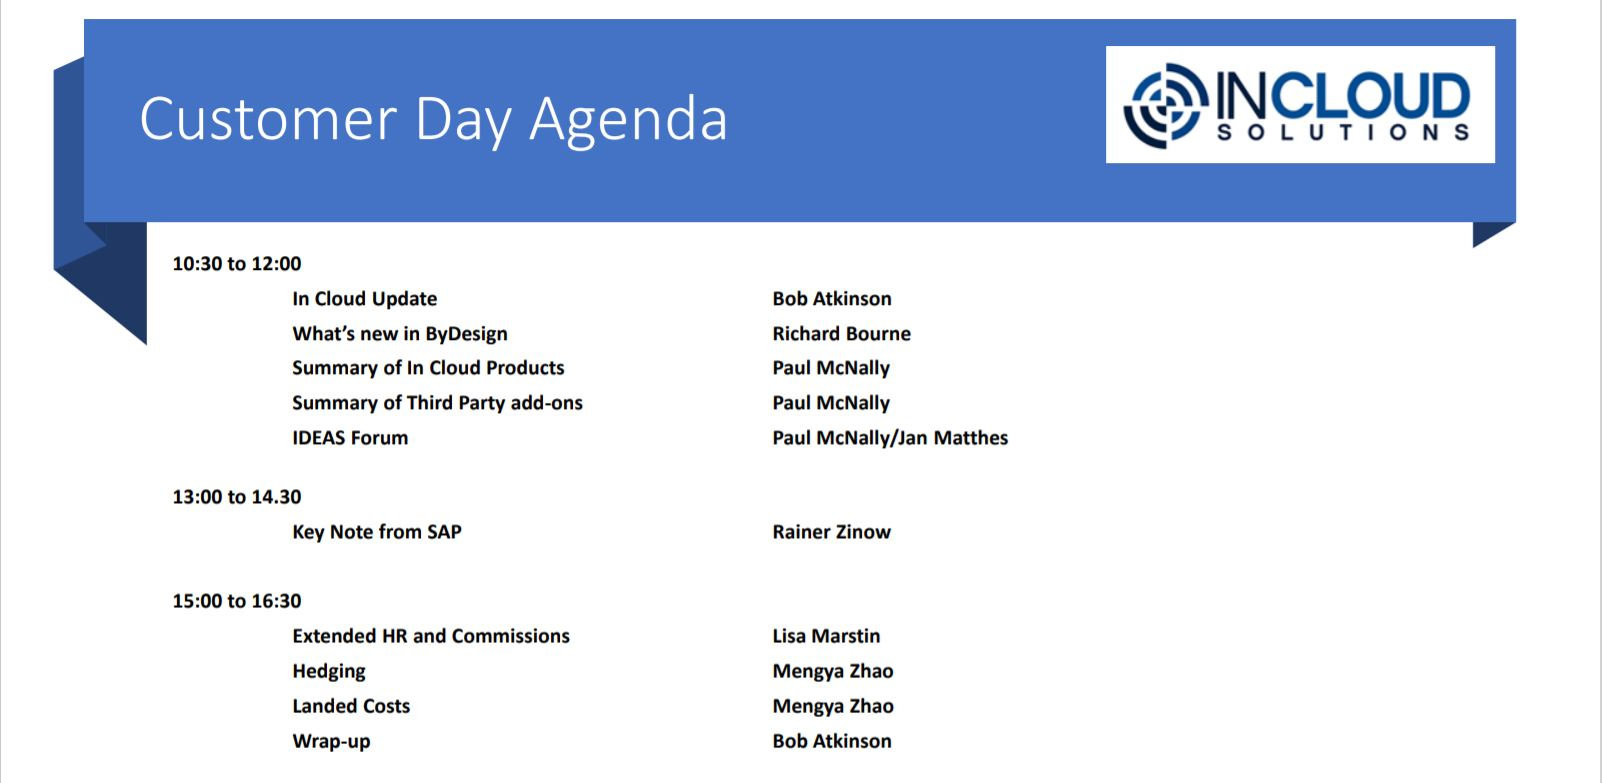 In Cloud Customer Day Agenda 2020